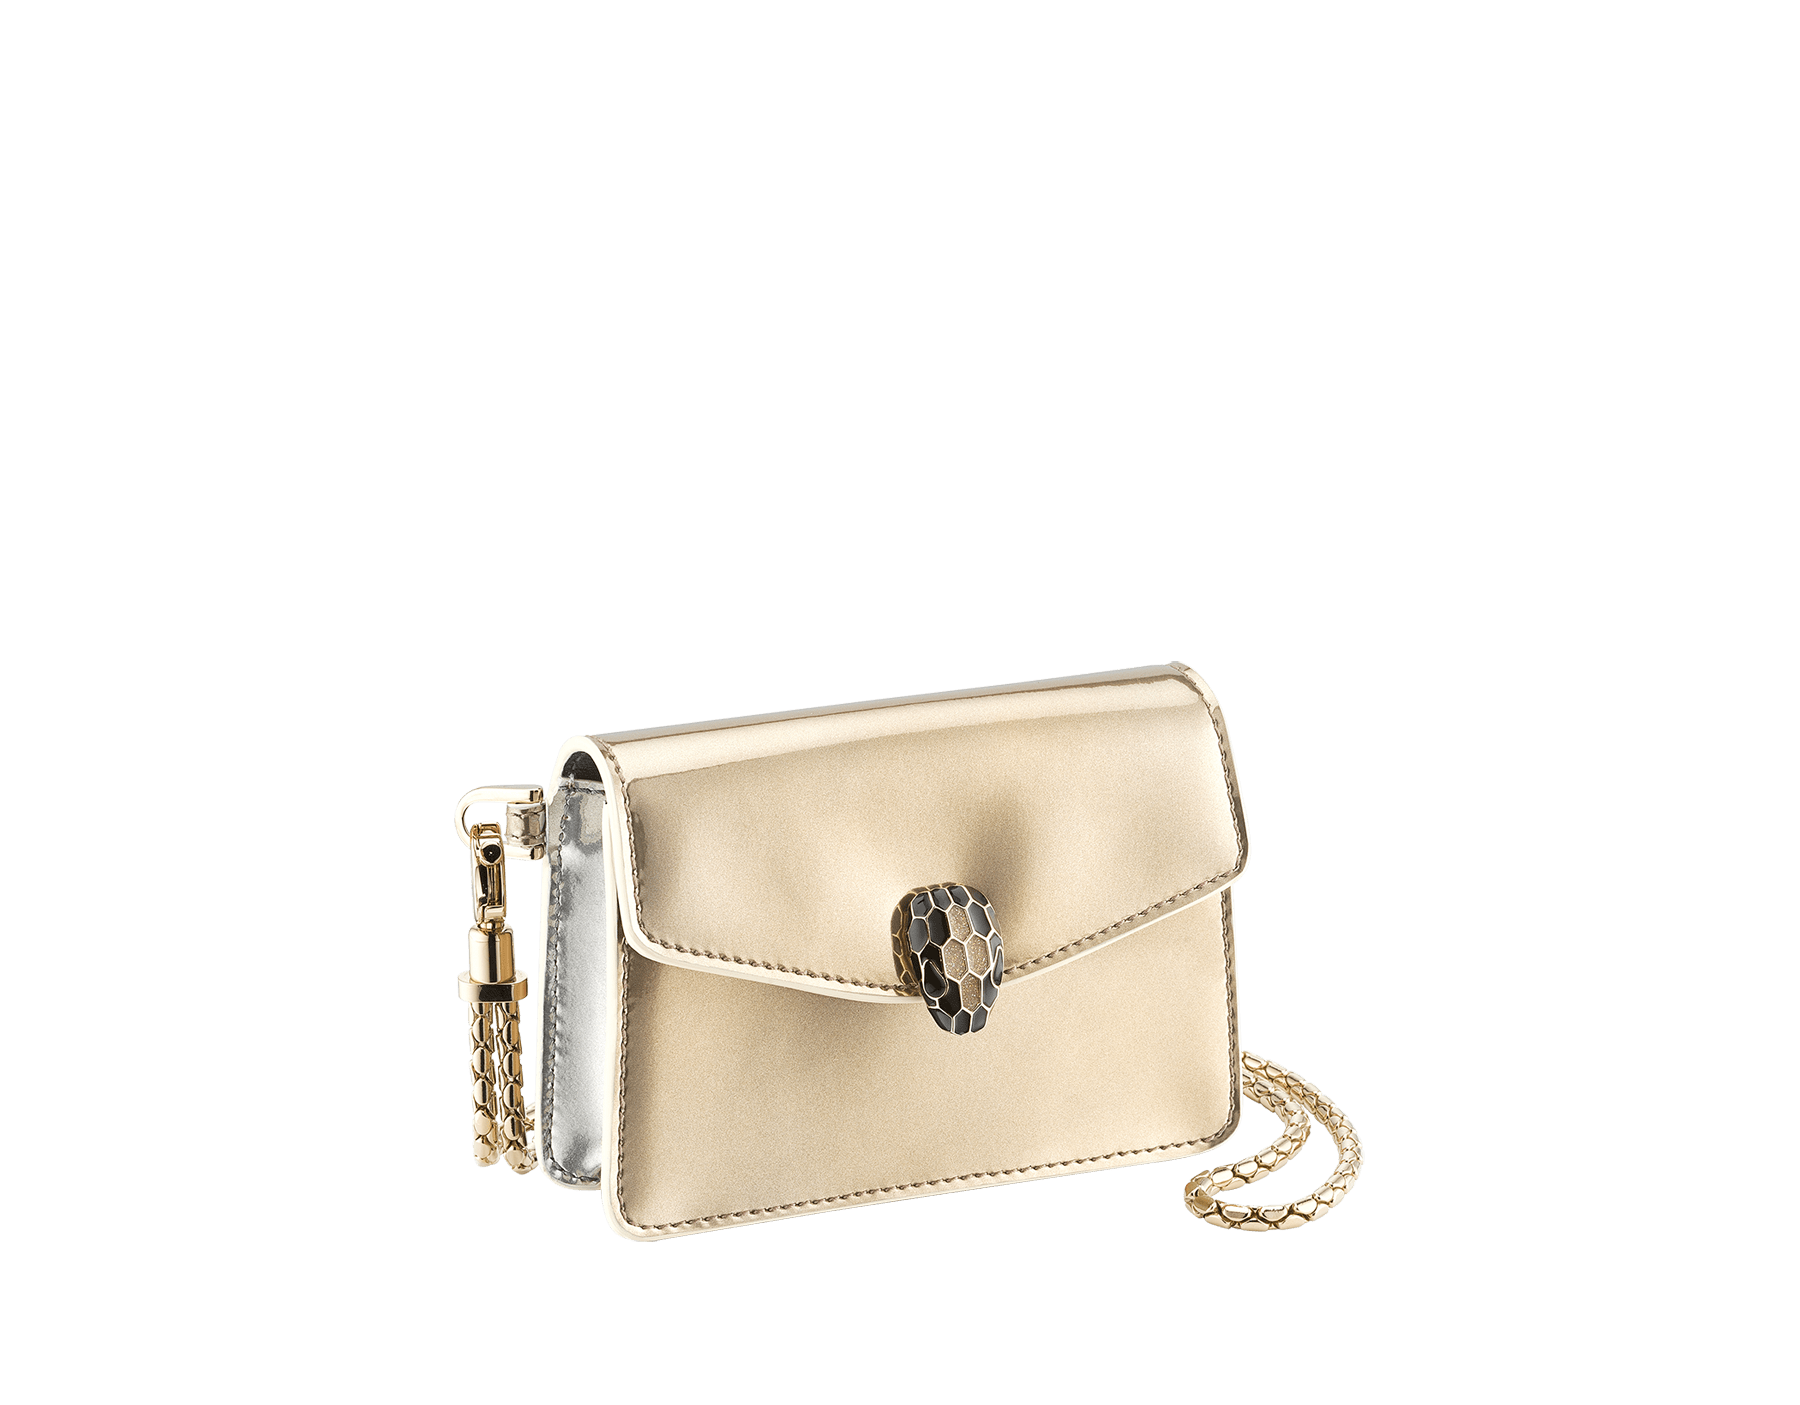 Serpenti Forever Holiday Season neck credit card holder in antique bronze and silver brushed metallic calf leather. Snakehead closure in light gold plated brass embellished with black and glitter antique bronze enamel, and black onyx eyes. 289490 image 1